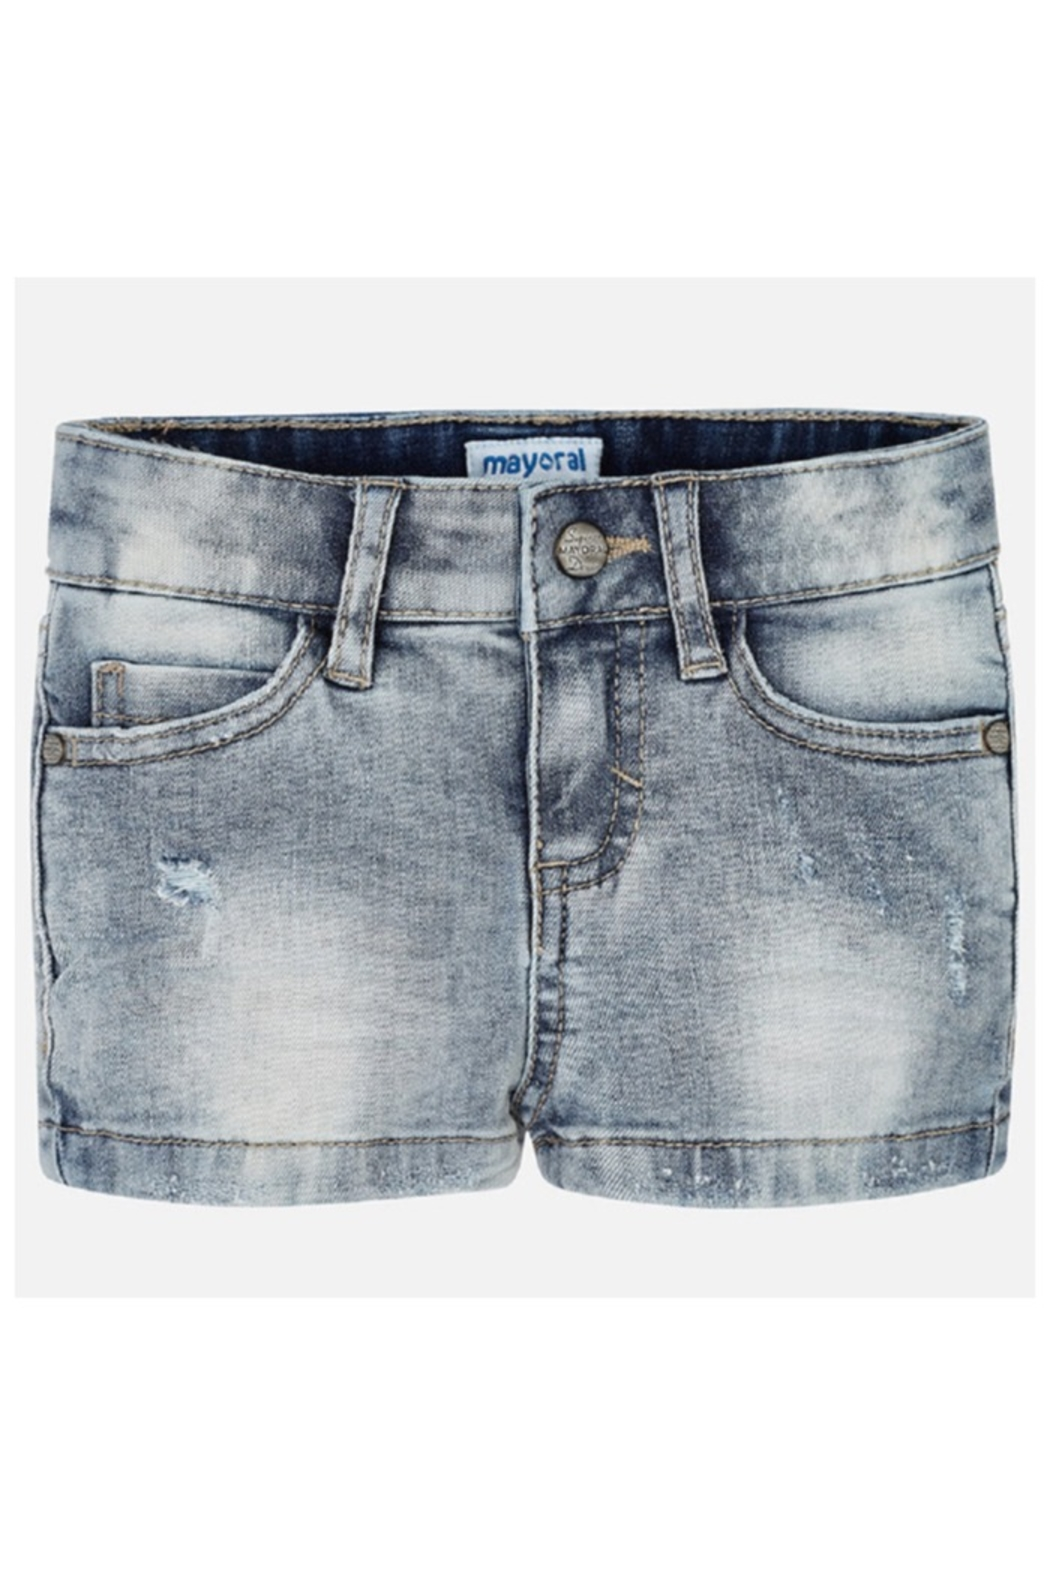 Mayoral BASIC STRETCH DENIM SHORT - Main Image